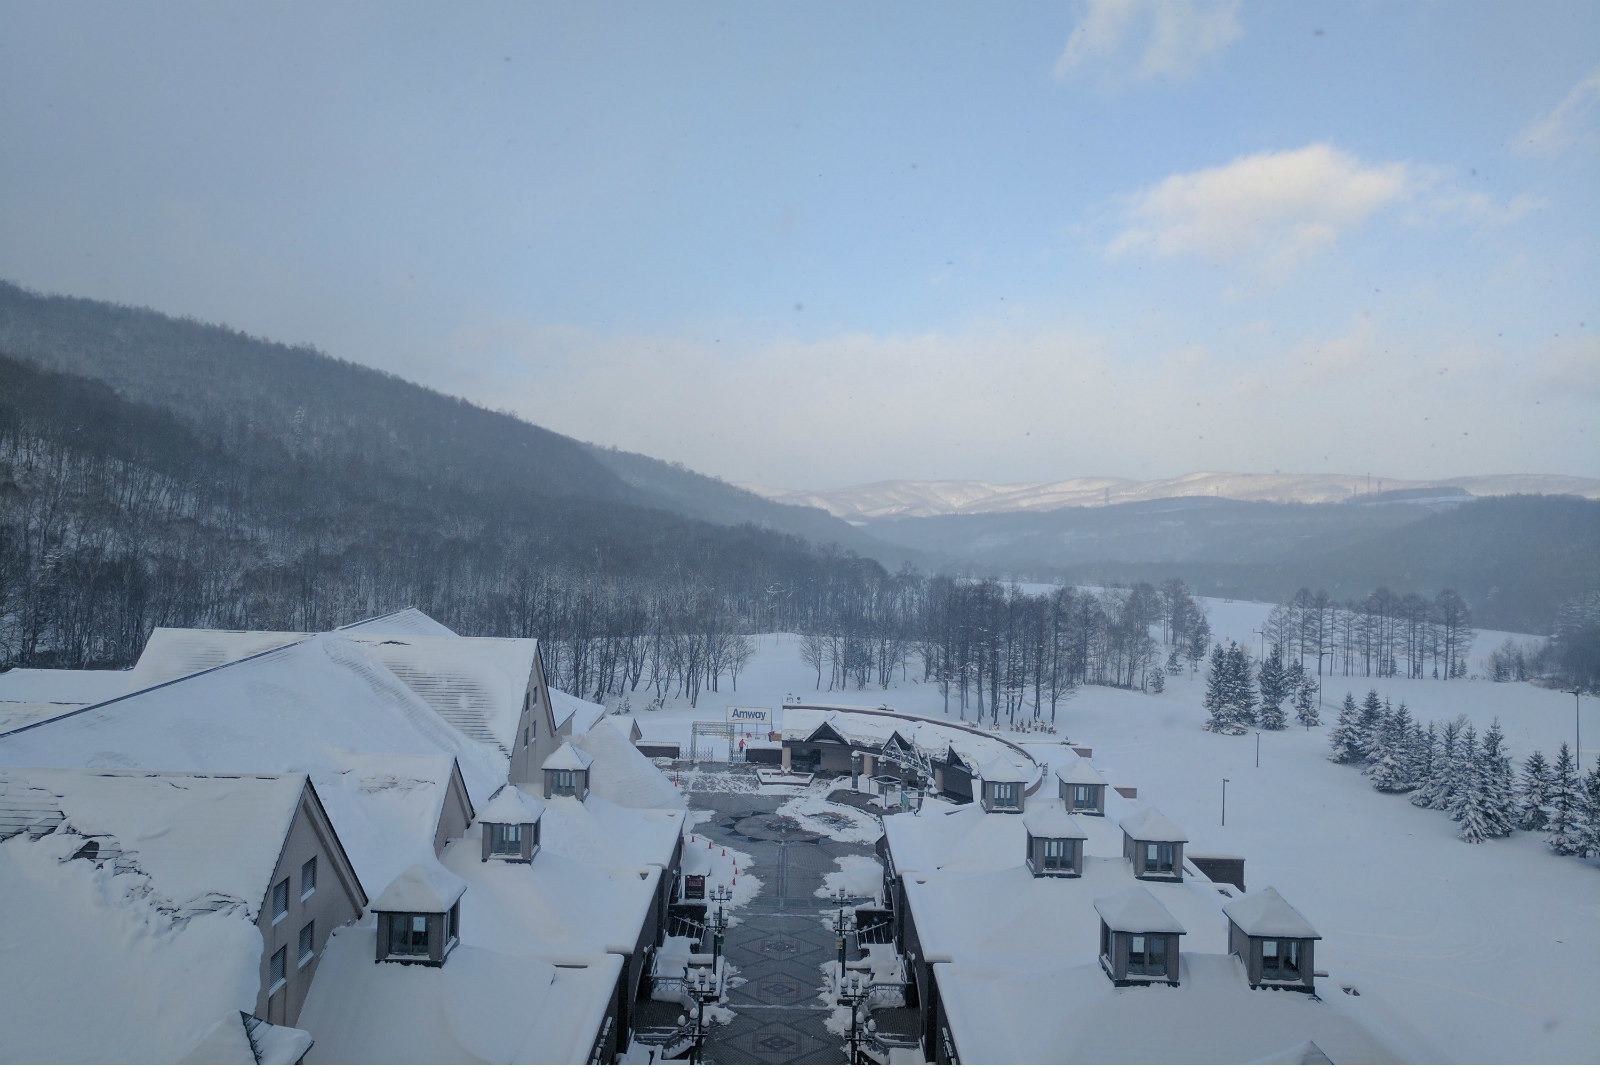 The Kiroro Resort Snow World Ski Center in Hokkaido, Japan's northernmost island, has received much acclaim for its vast supply of powdery snow,